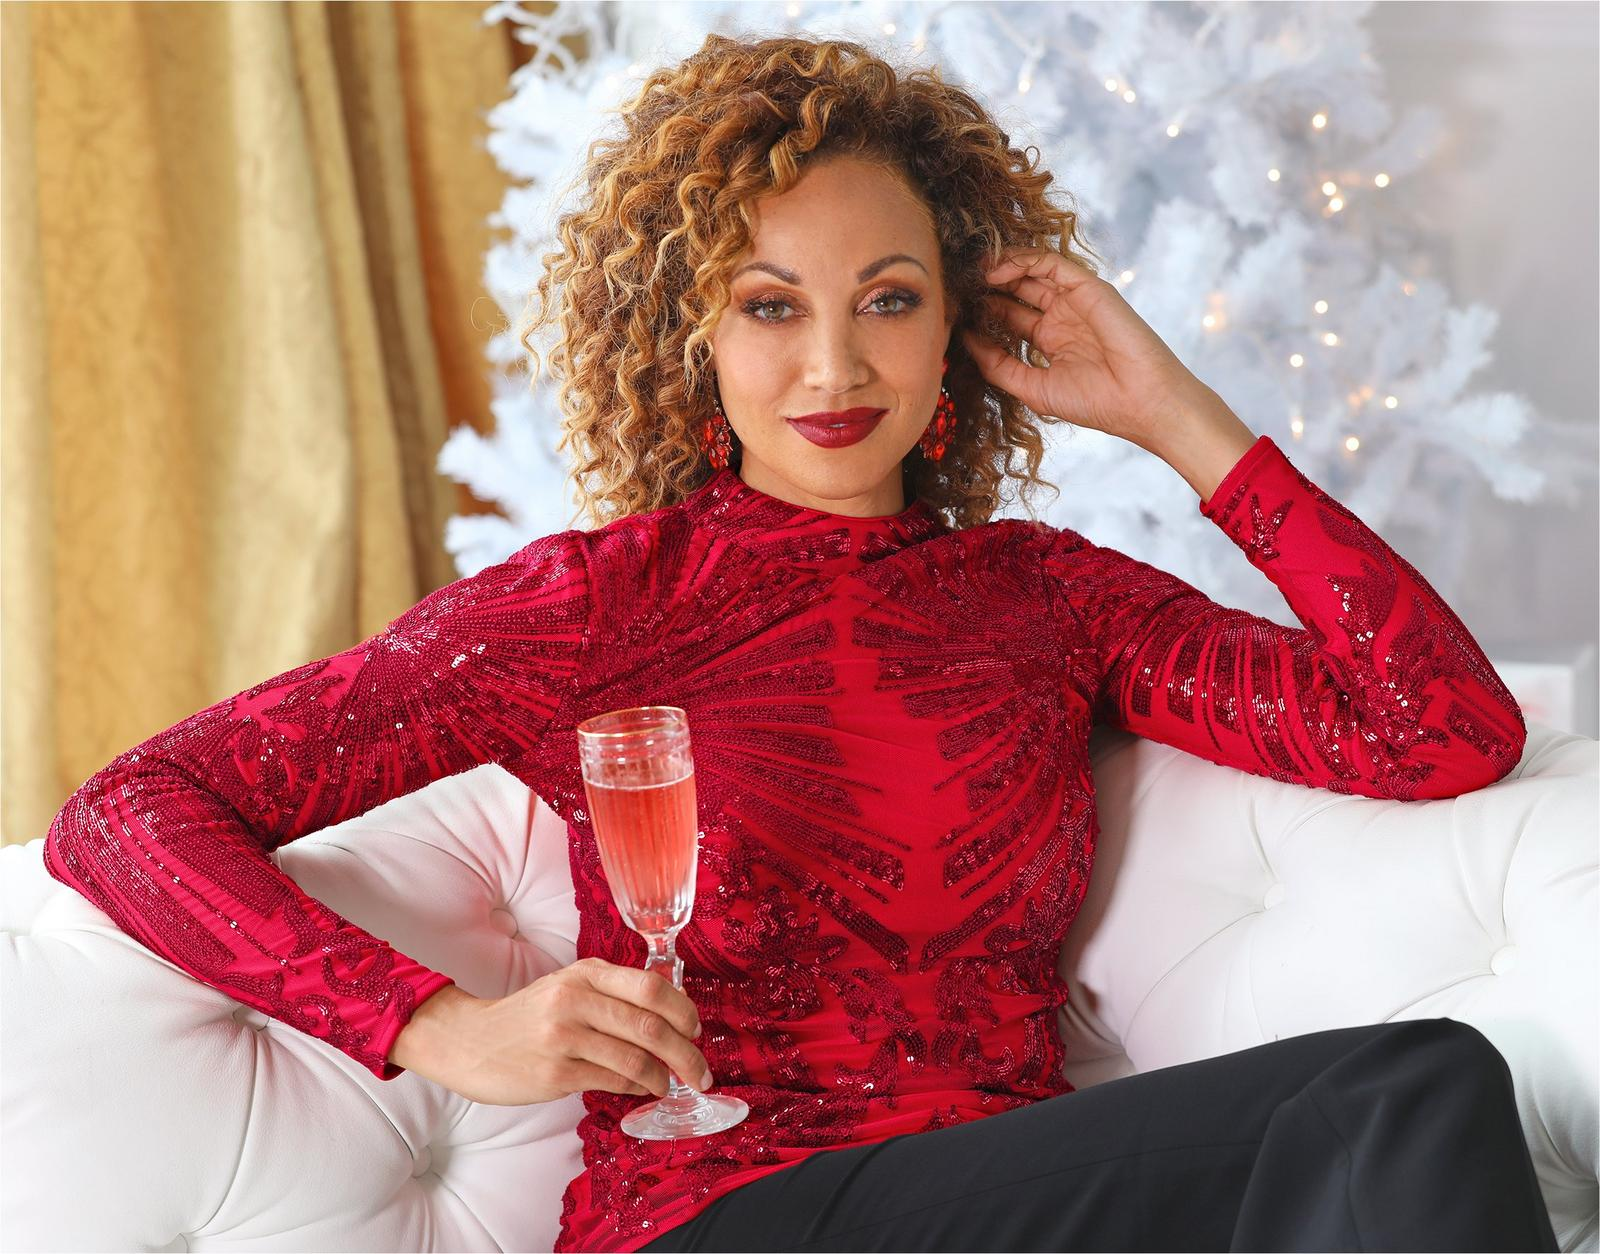 model wearing red sequin mock neck long-sleeve top with black pants and holding a glass of champagne.